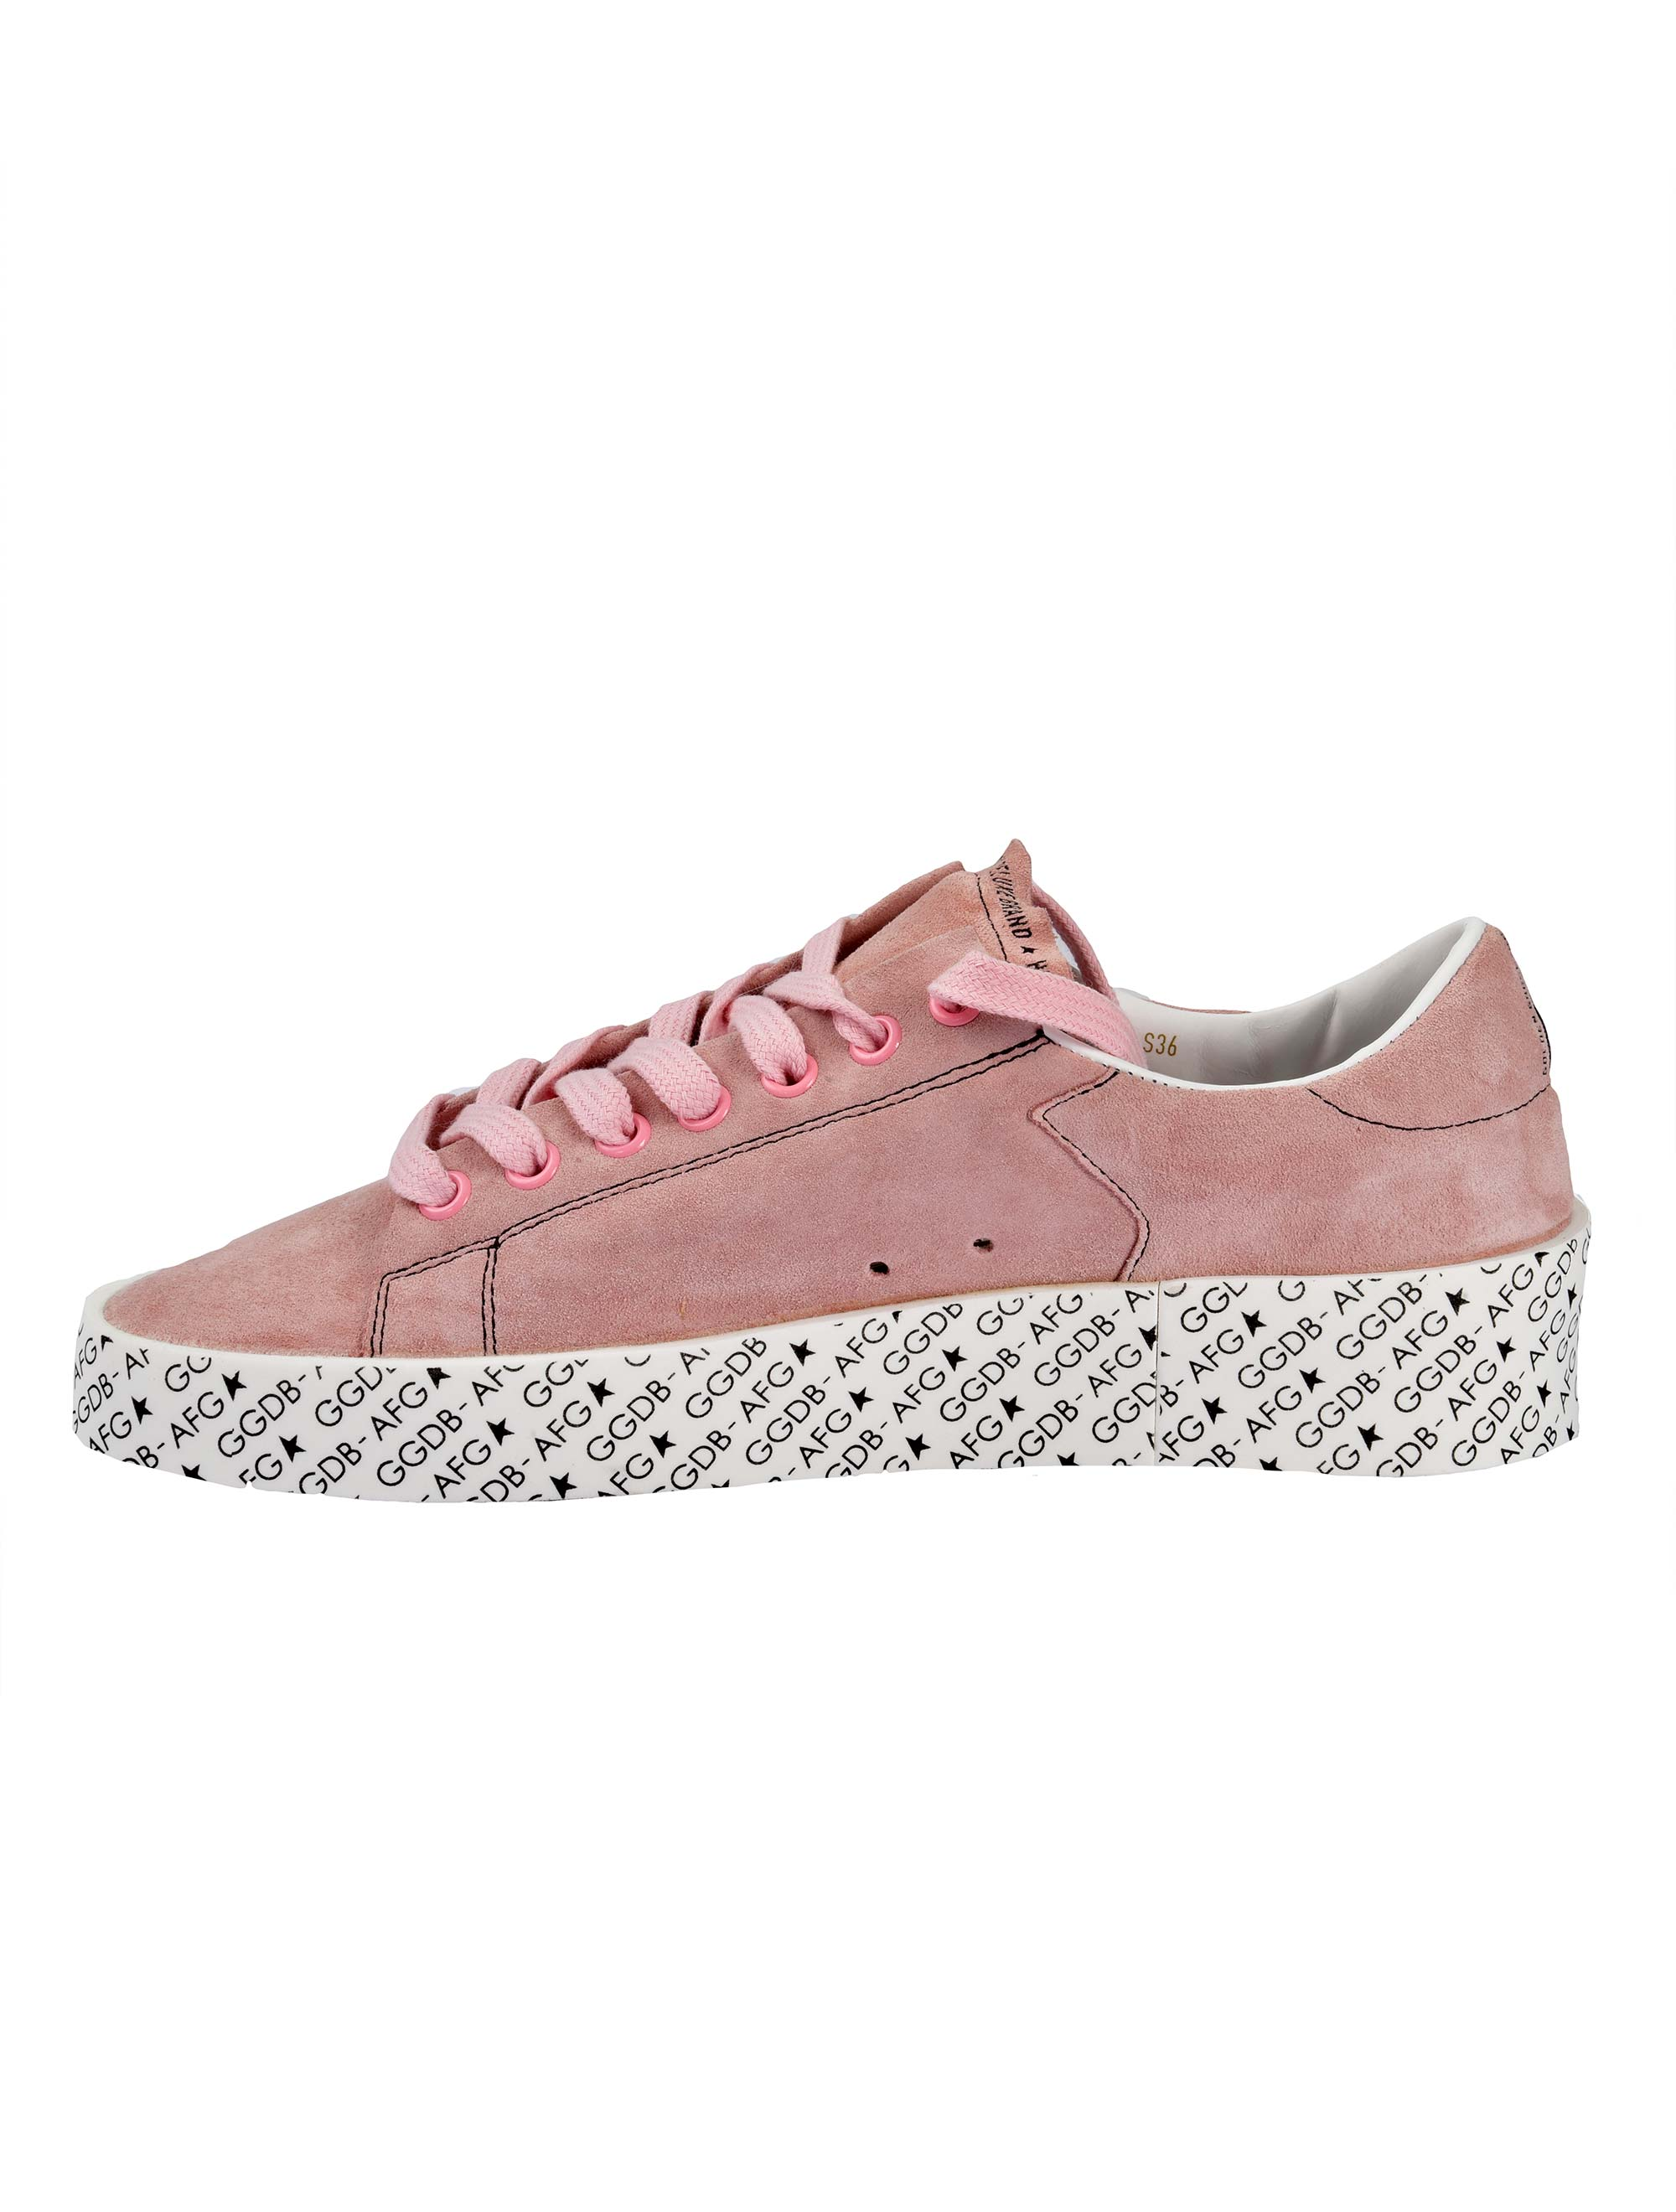 Picture of Golden Goose Deluxe Brand | High End